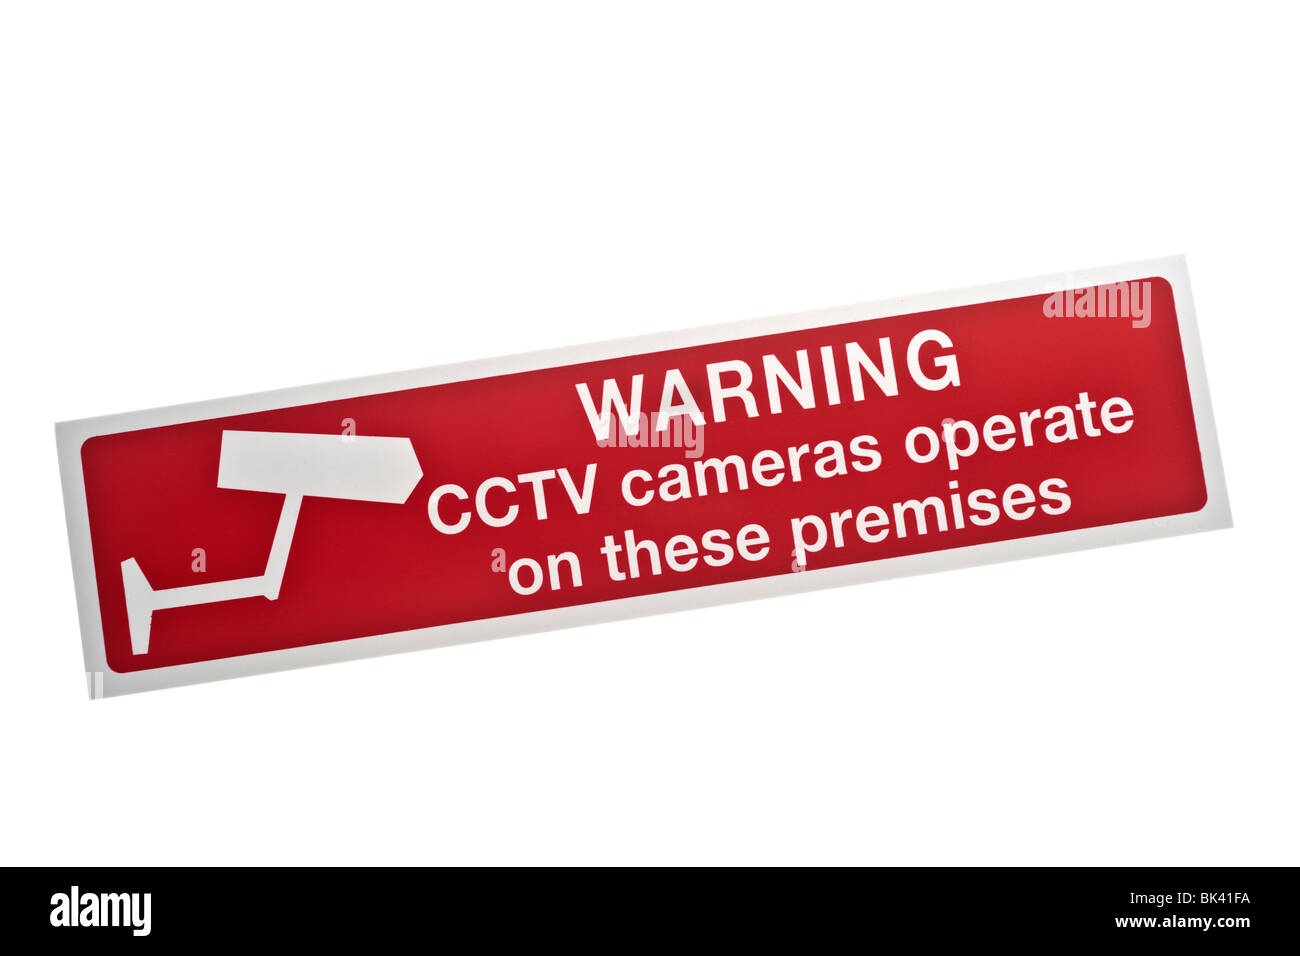 Red warning sticker CCTV cameras operate on these premises - Stock Image